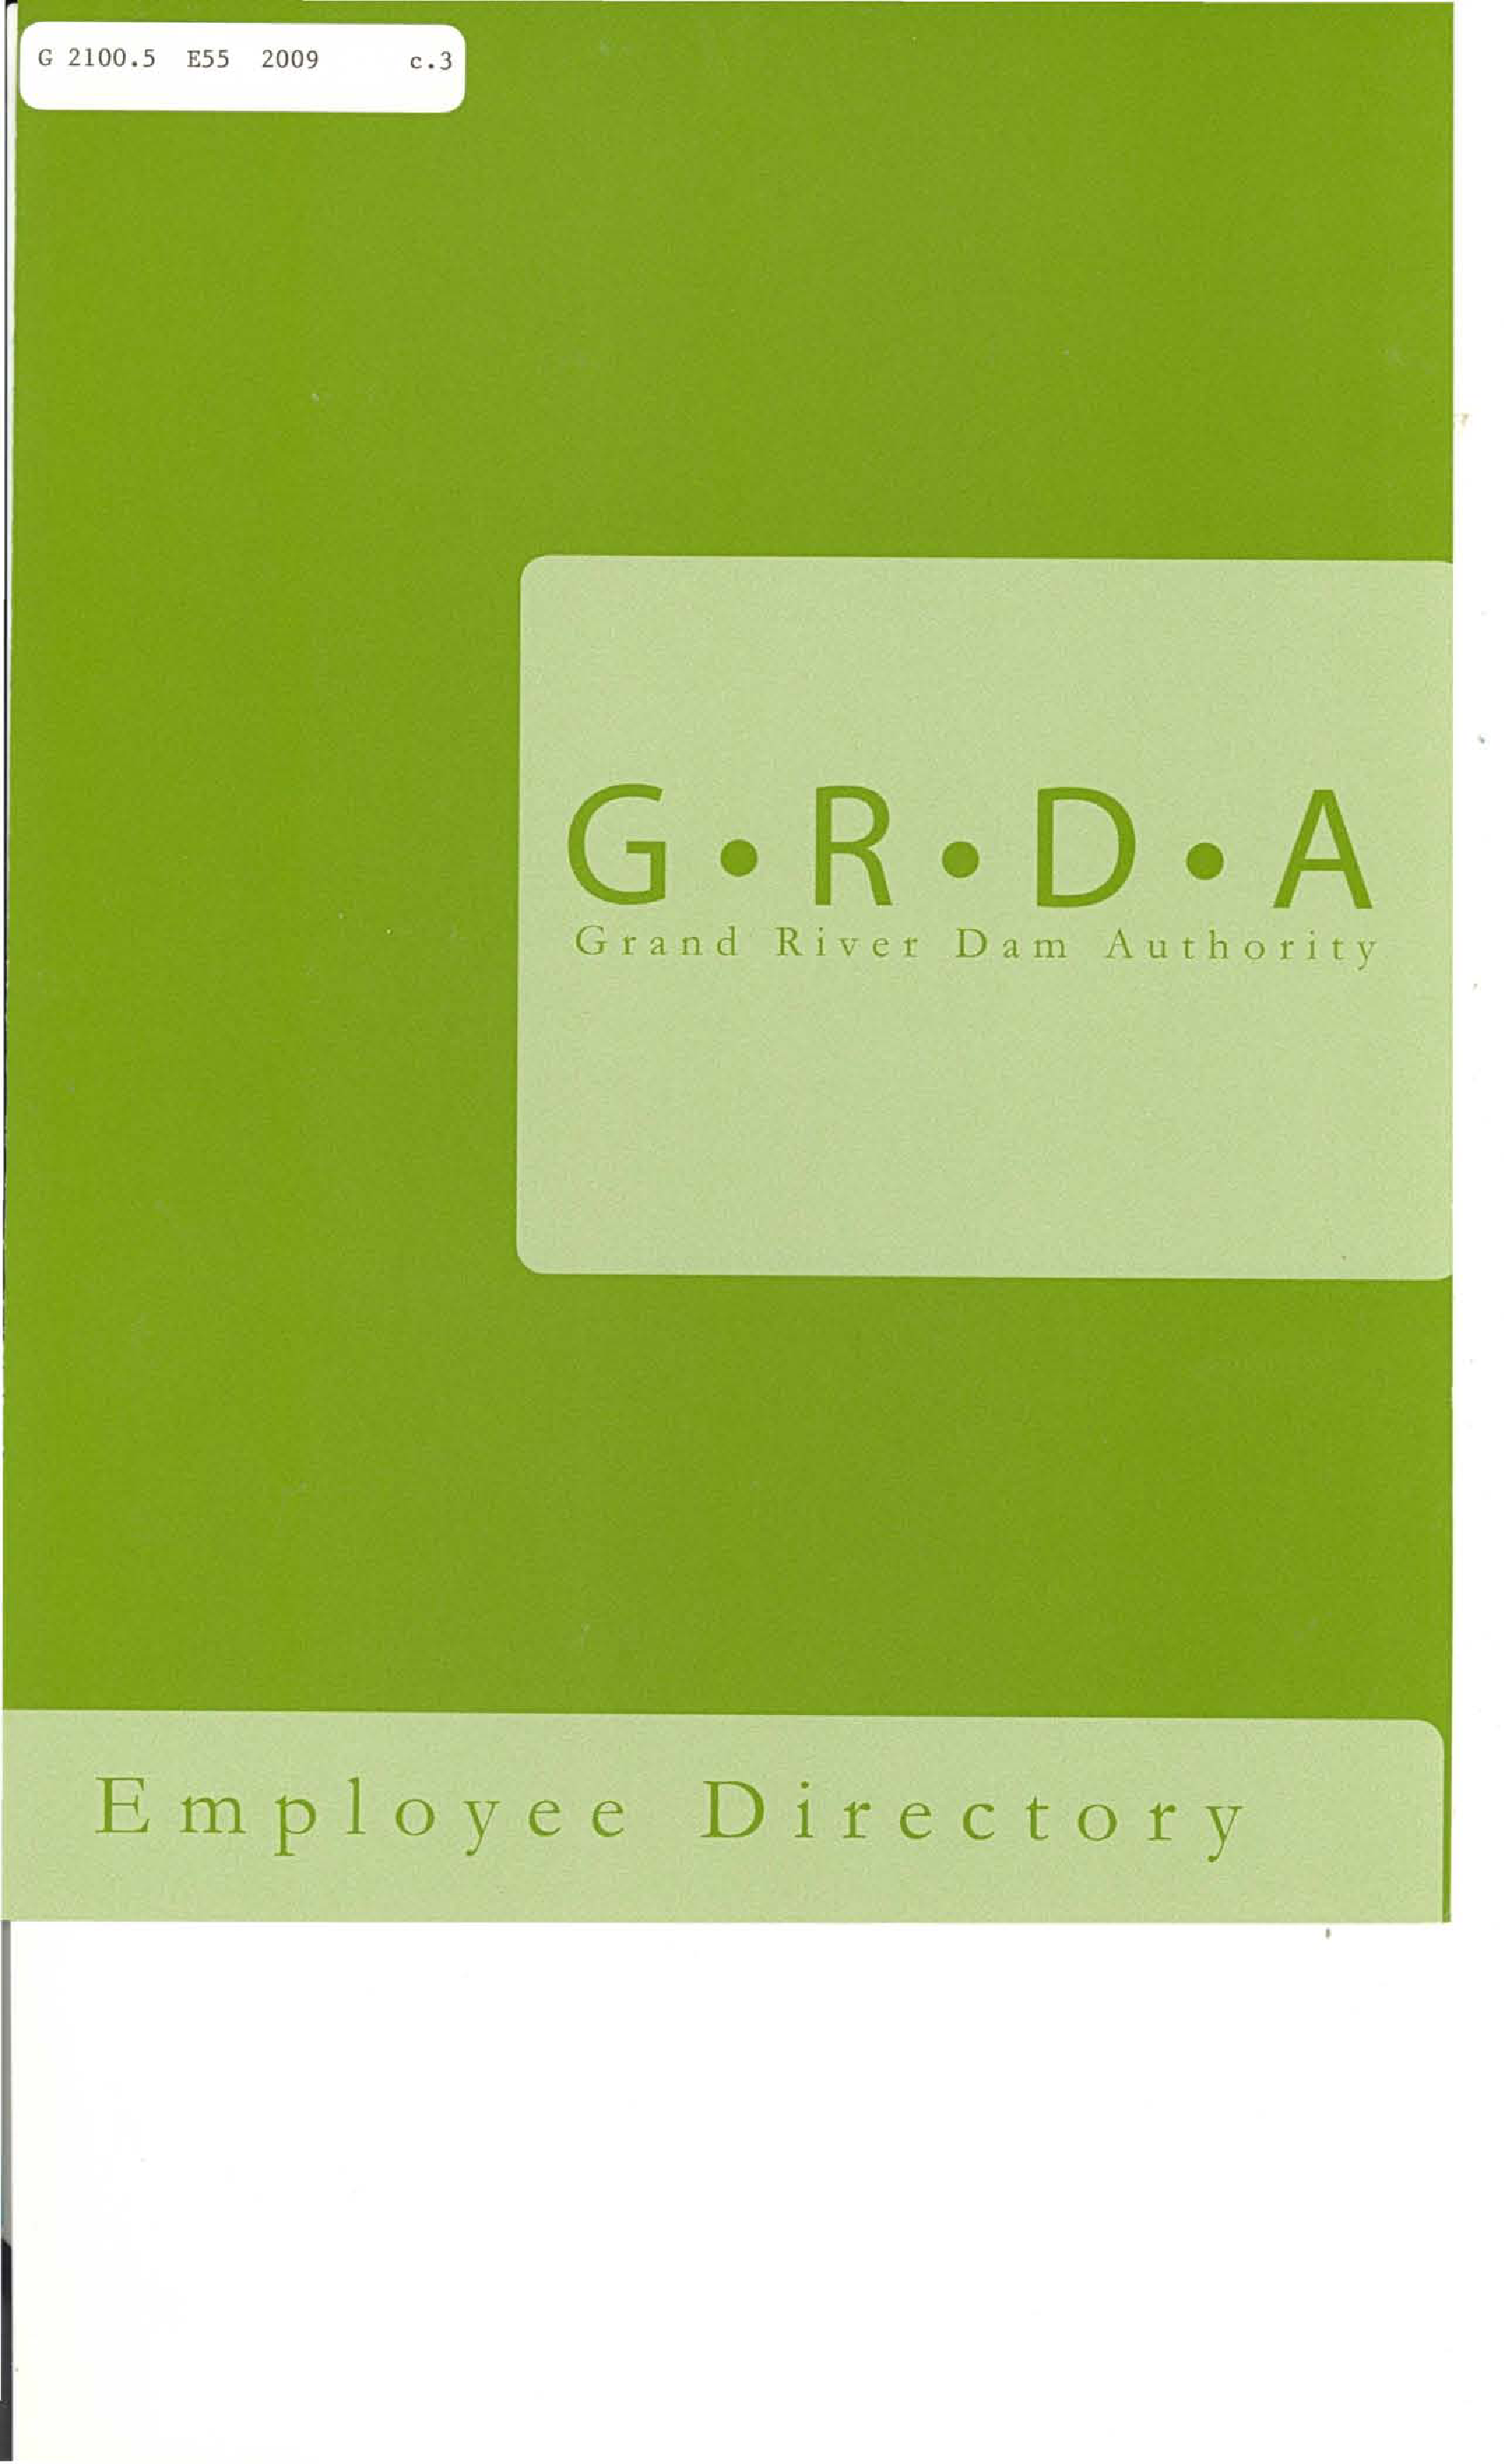 GRDA Employee Dir 2009 - Documents OK Gov - Oklahoma Digital